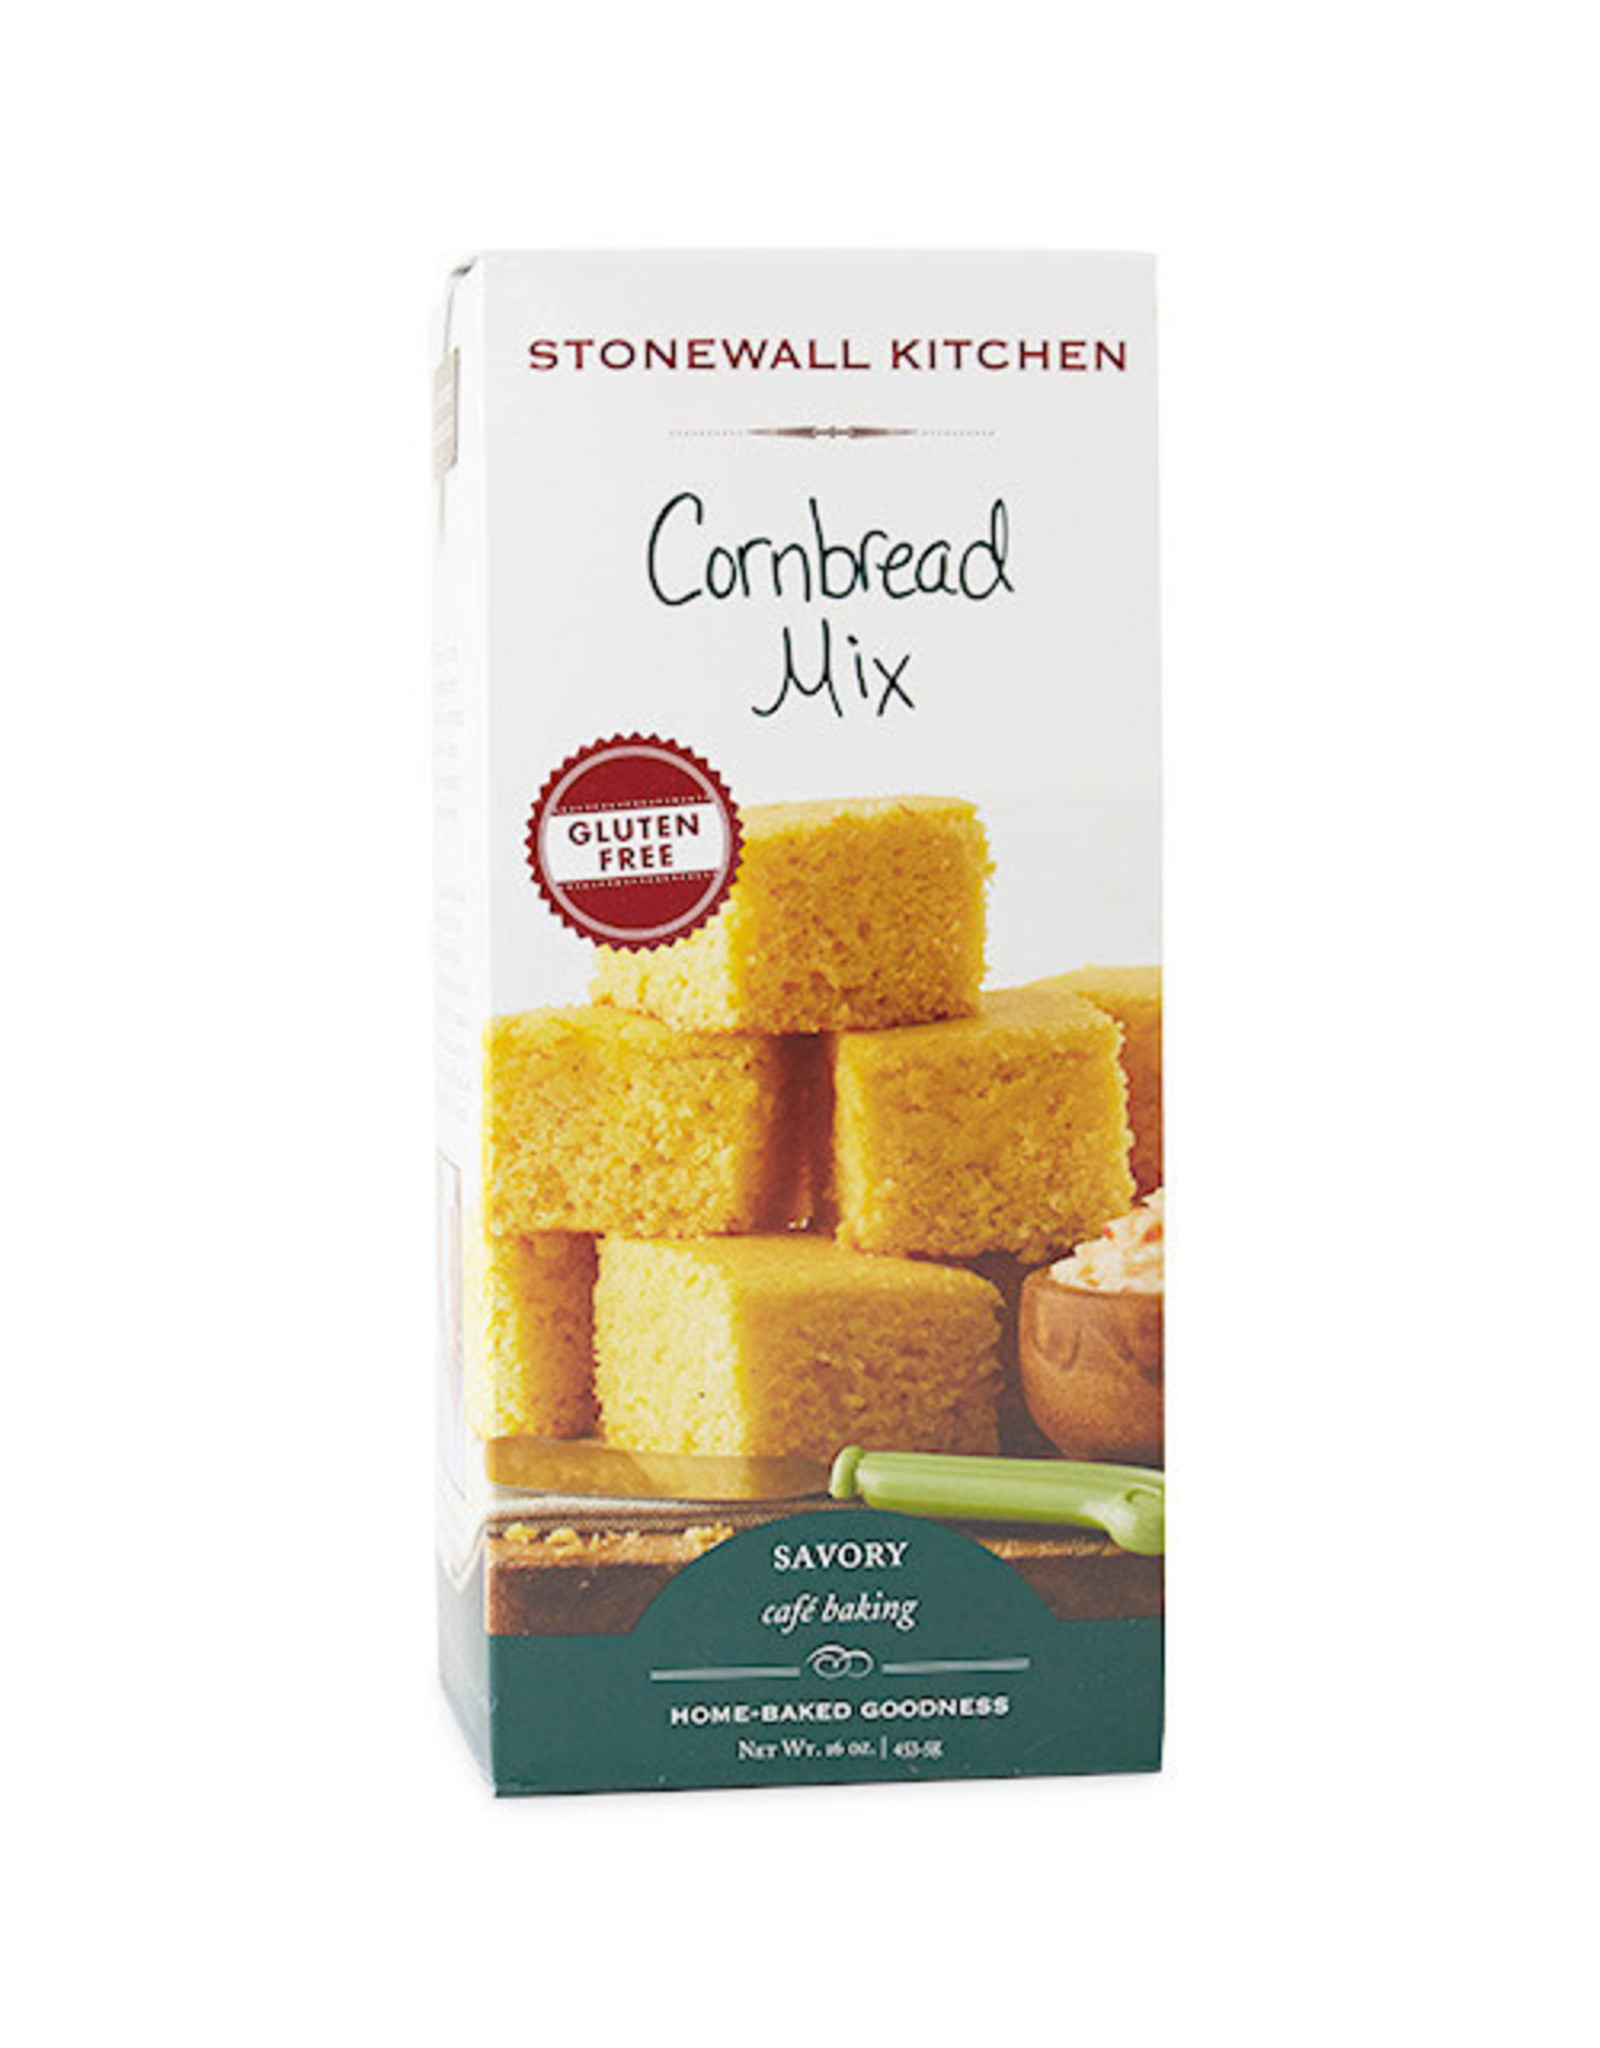 Stonewall Kitchen CORNBREAD MIX GLUTEN FREE